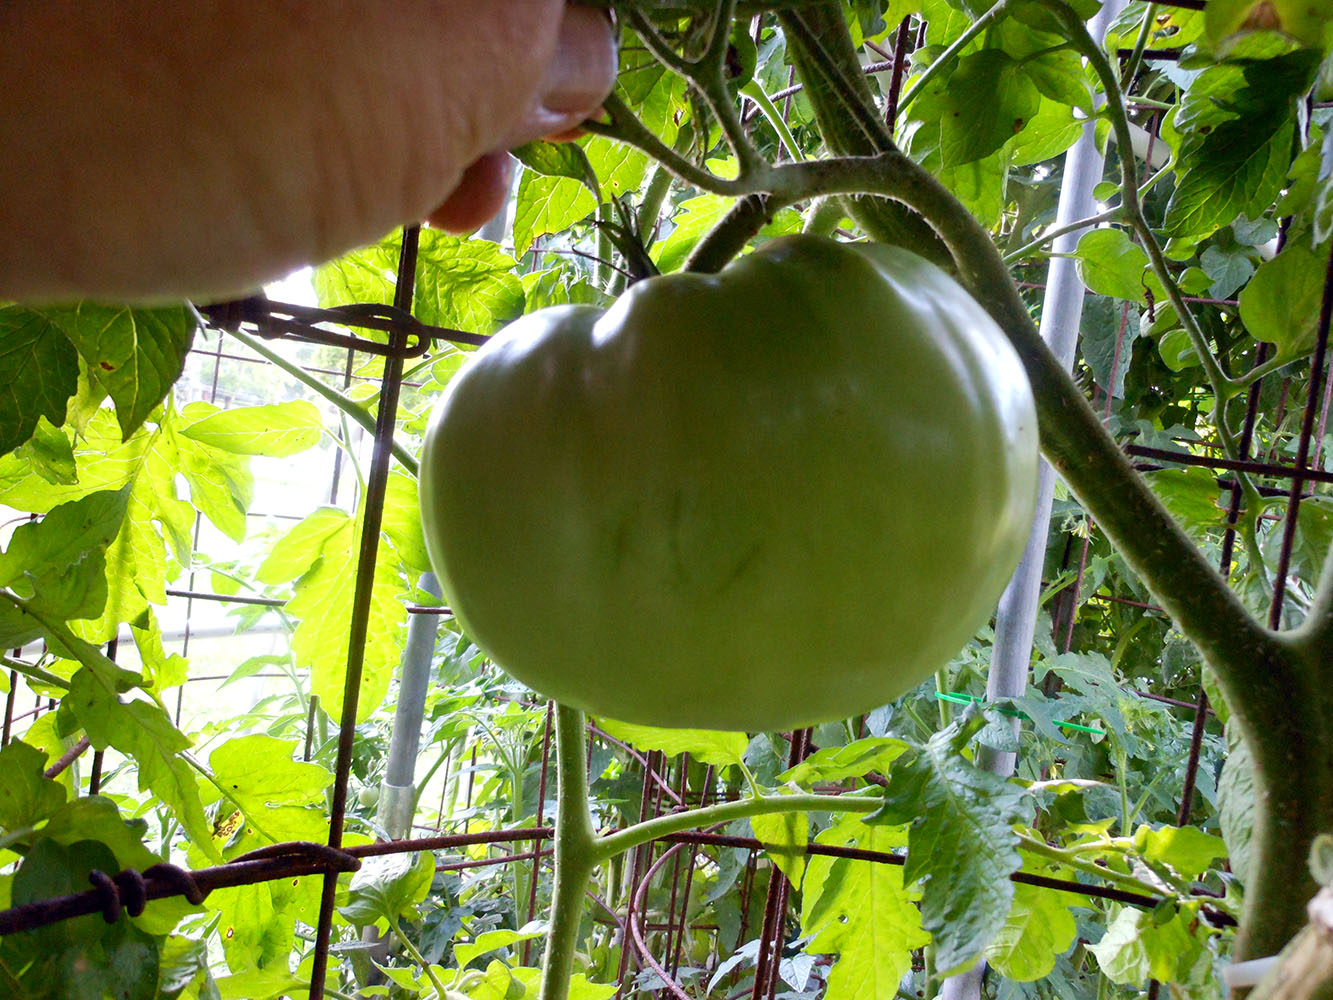 07-03-2015 Garden No 2 Giant Better Boy Tomatos 03